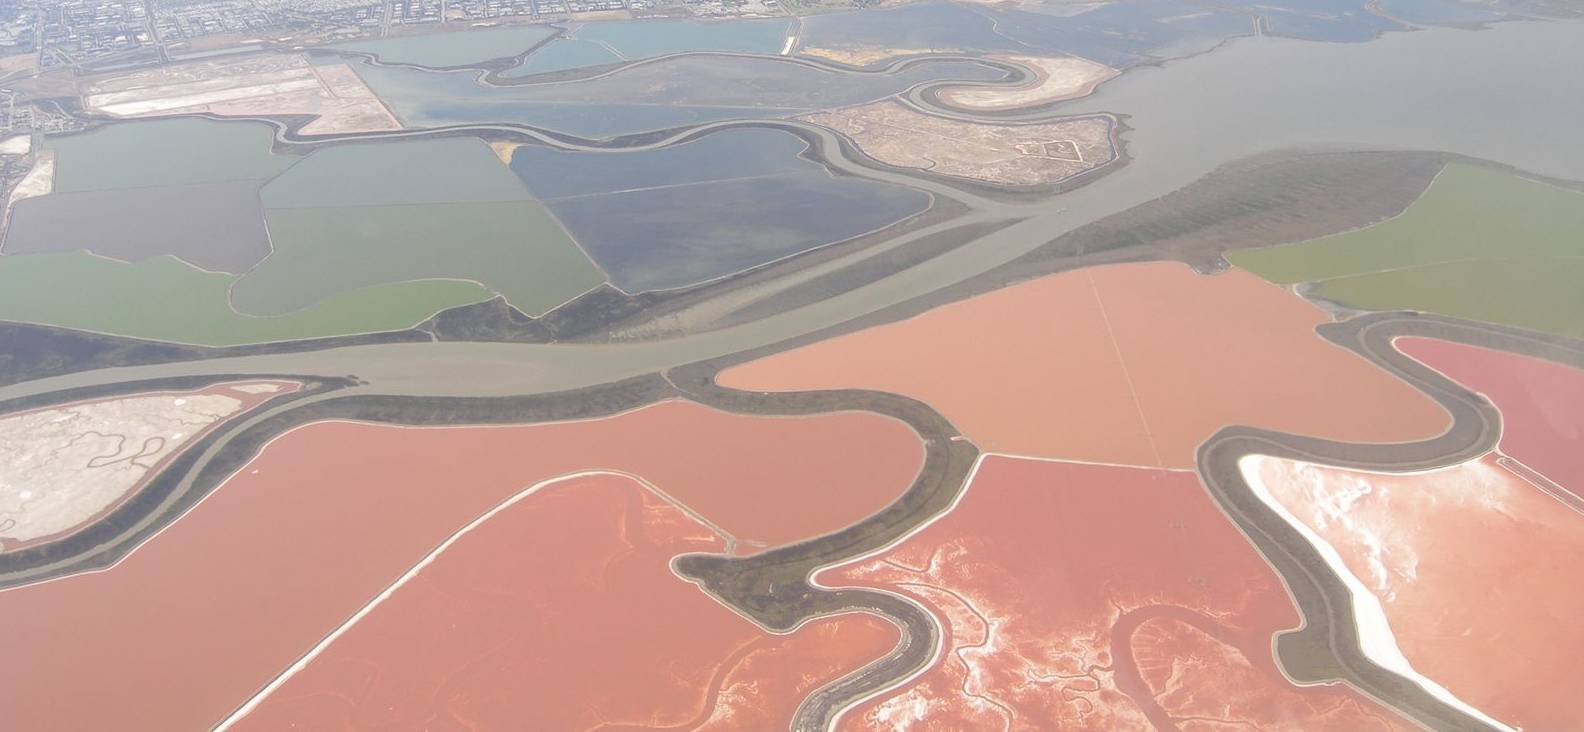 LISTEN: What Are Those Weird, Pink Ponds in San Francisco Bay?